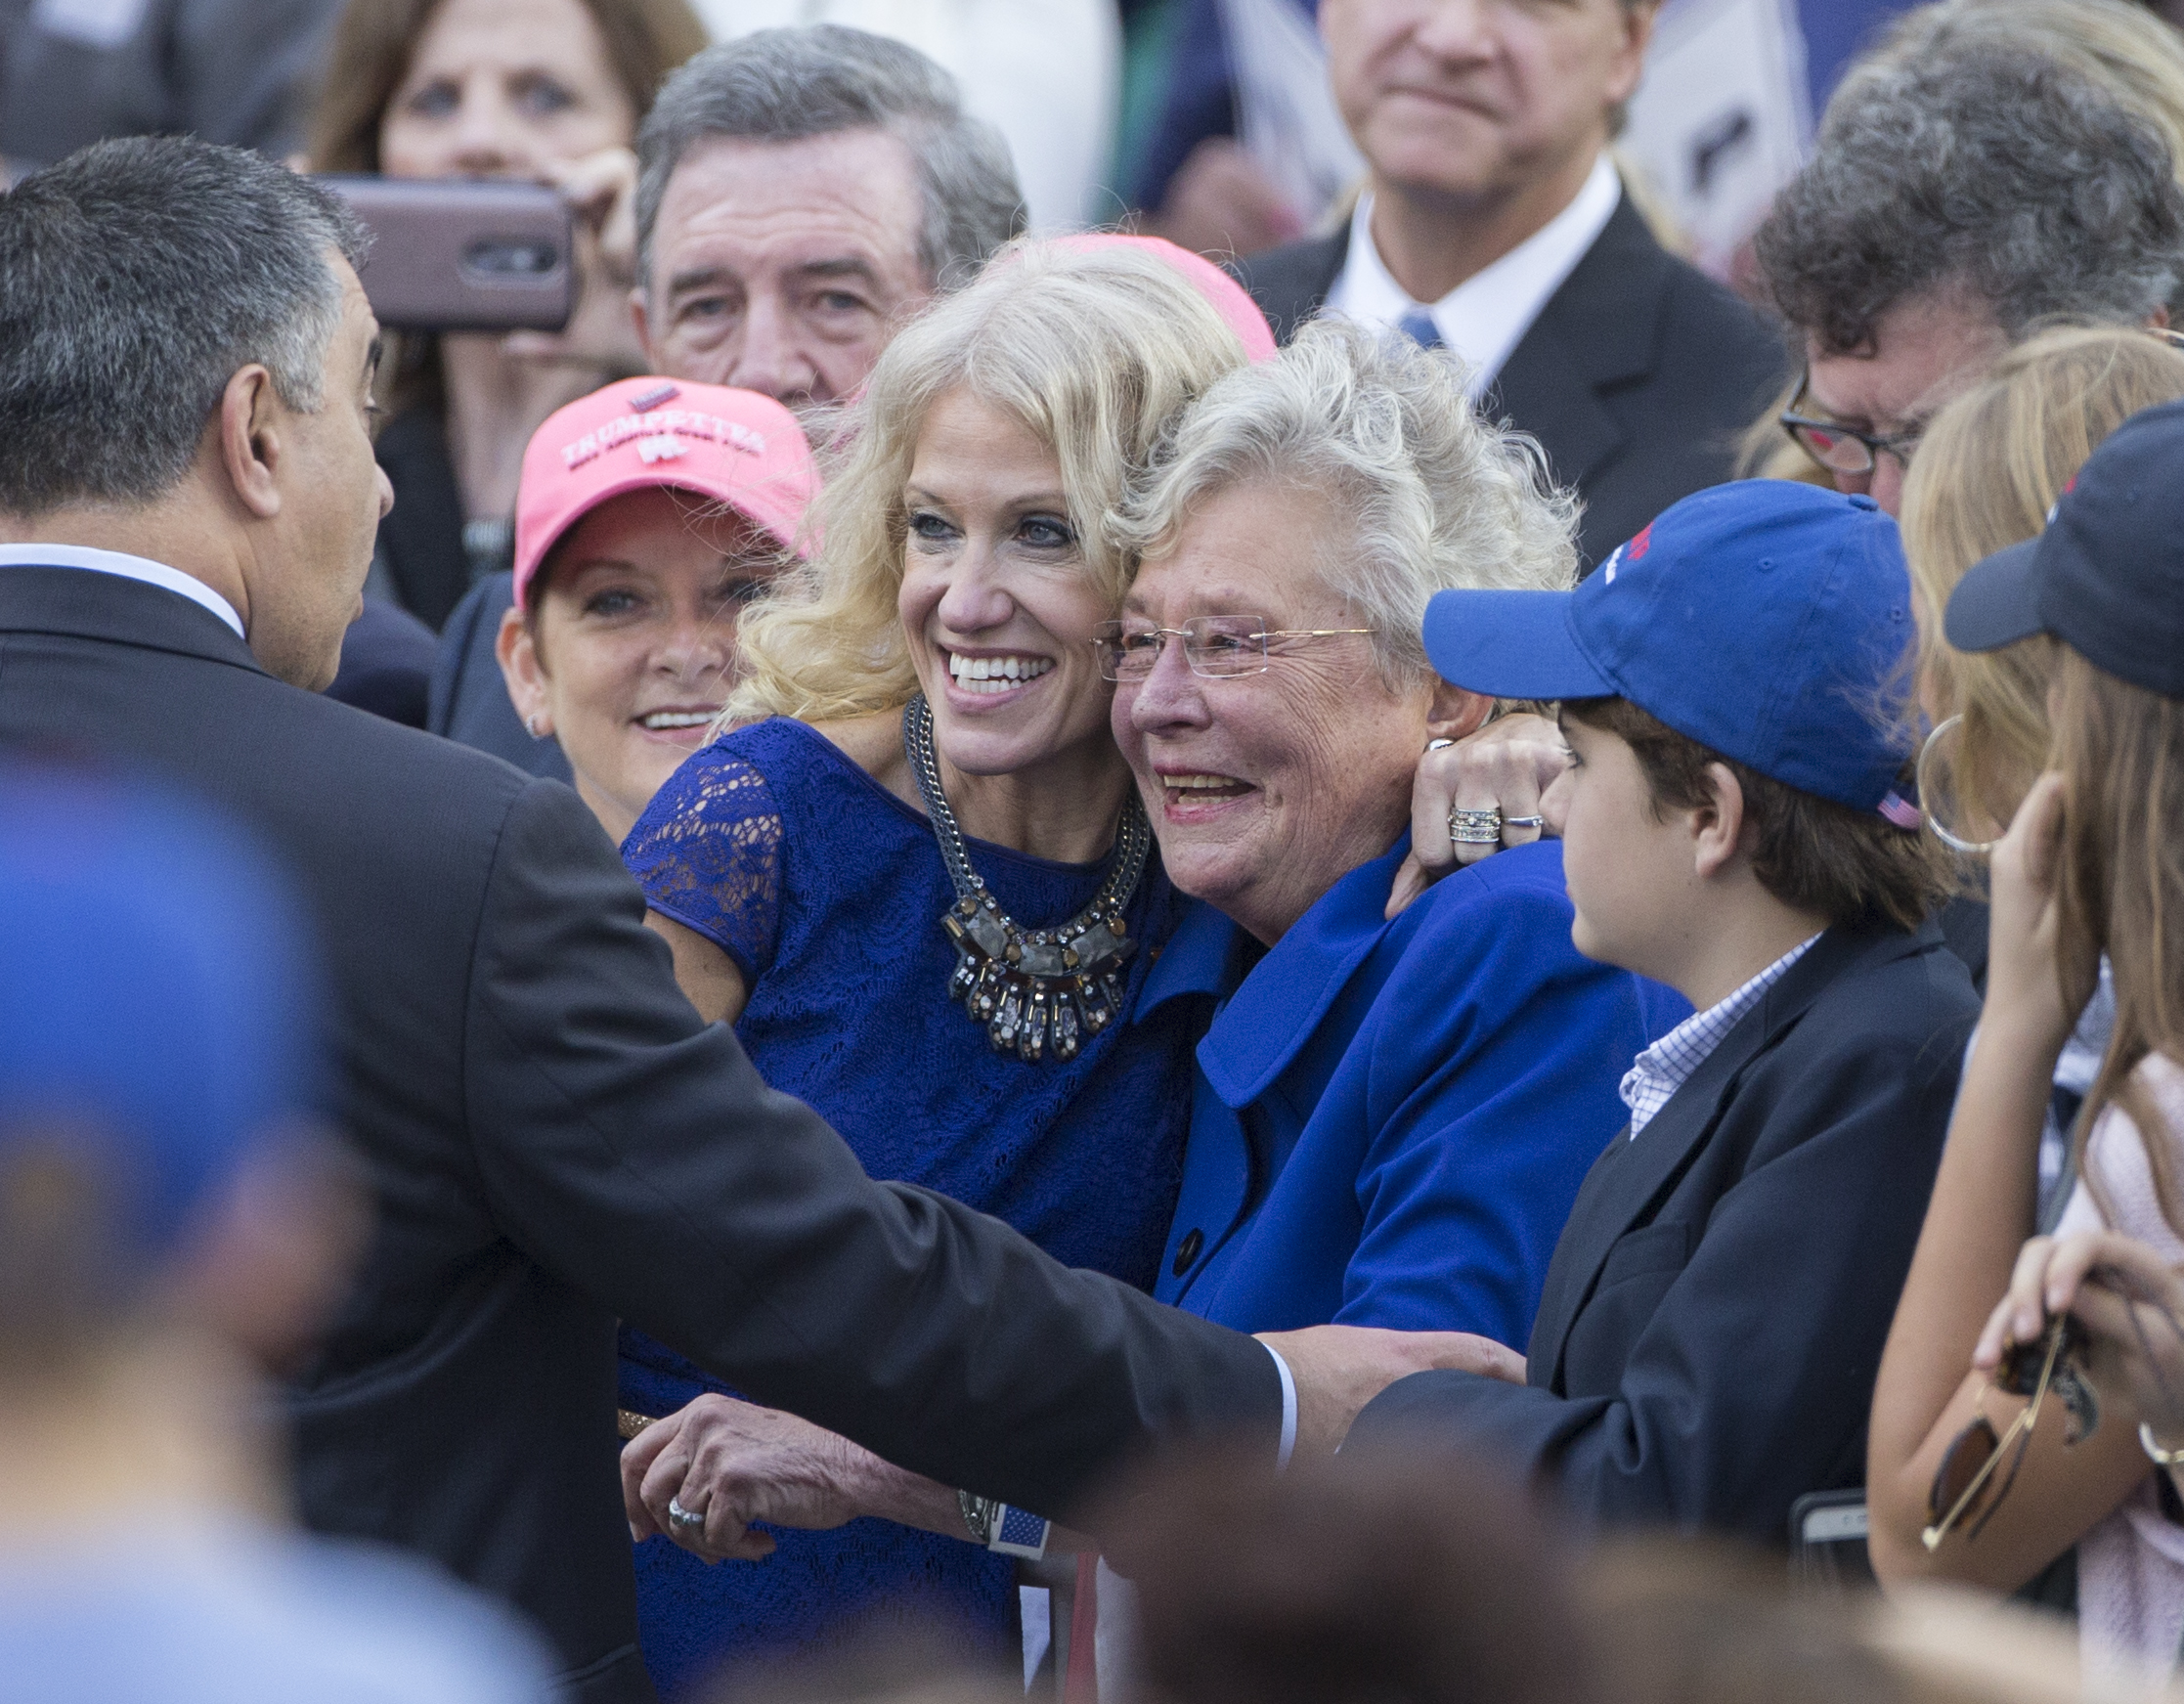 President-elect Donald Trump's campaign manager Kellyanne Conway, left, poses for photos with Alabama Lieutenant Governor Kay Ivey during a thank you rally in Ladd-Peebles Stadium on December 17, 2016 in Mobile, Alabama. (Photo by Mark Wallheiser/Getty Images)